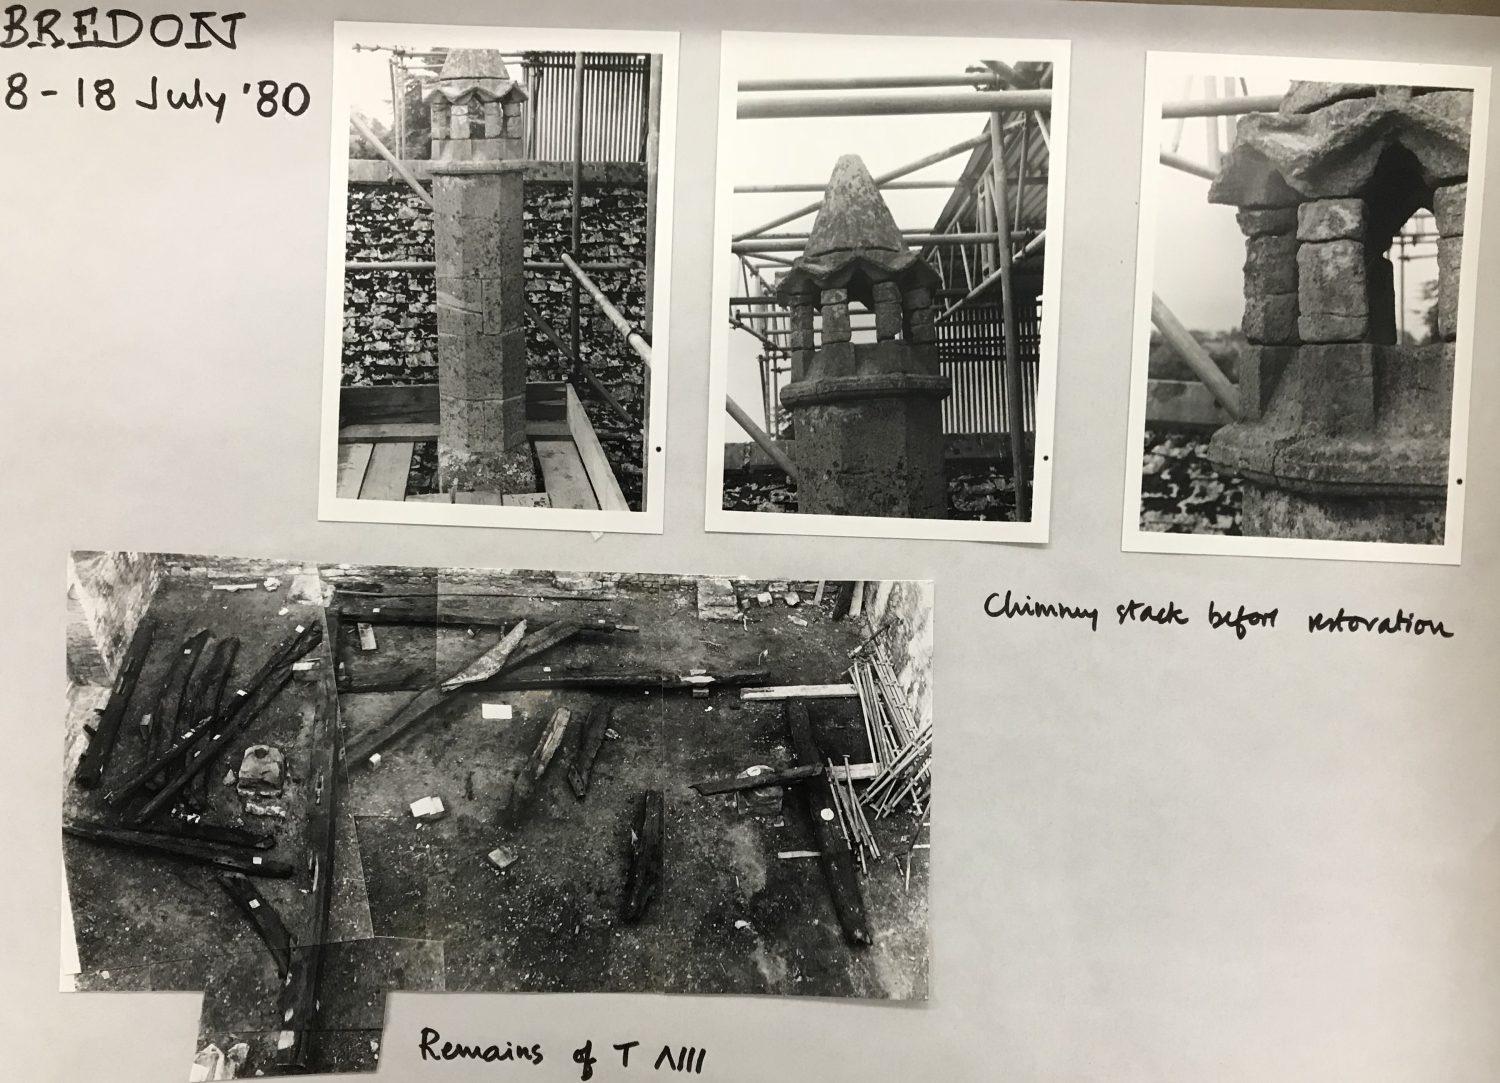 Photographs dated 8 – 18th July 1980, of the medieval stone chimney with conical roof and charred timbers laid out on the floor